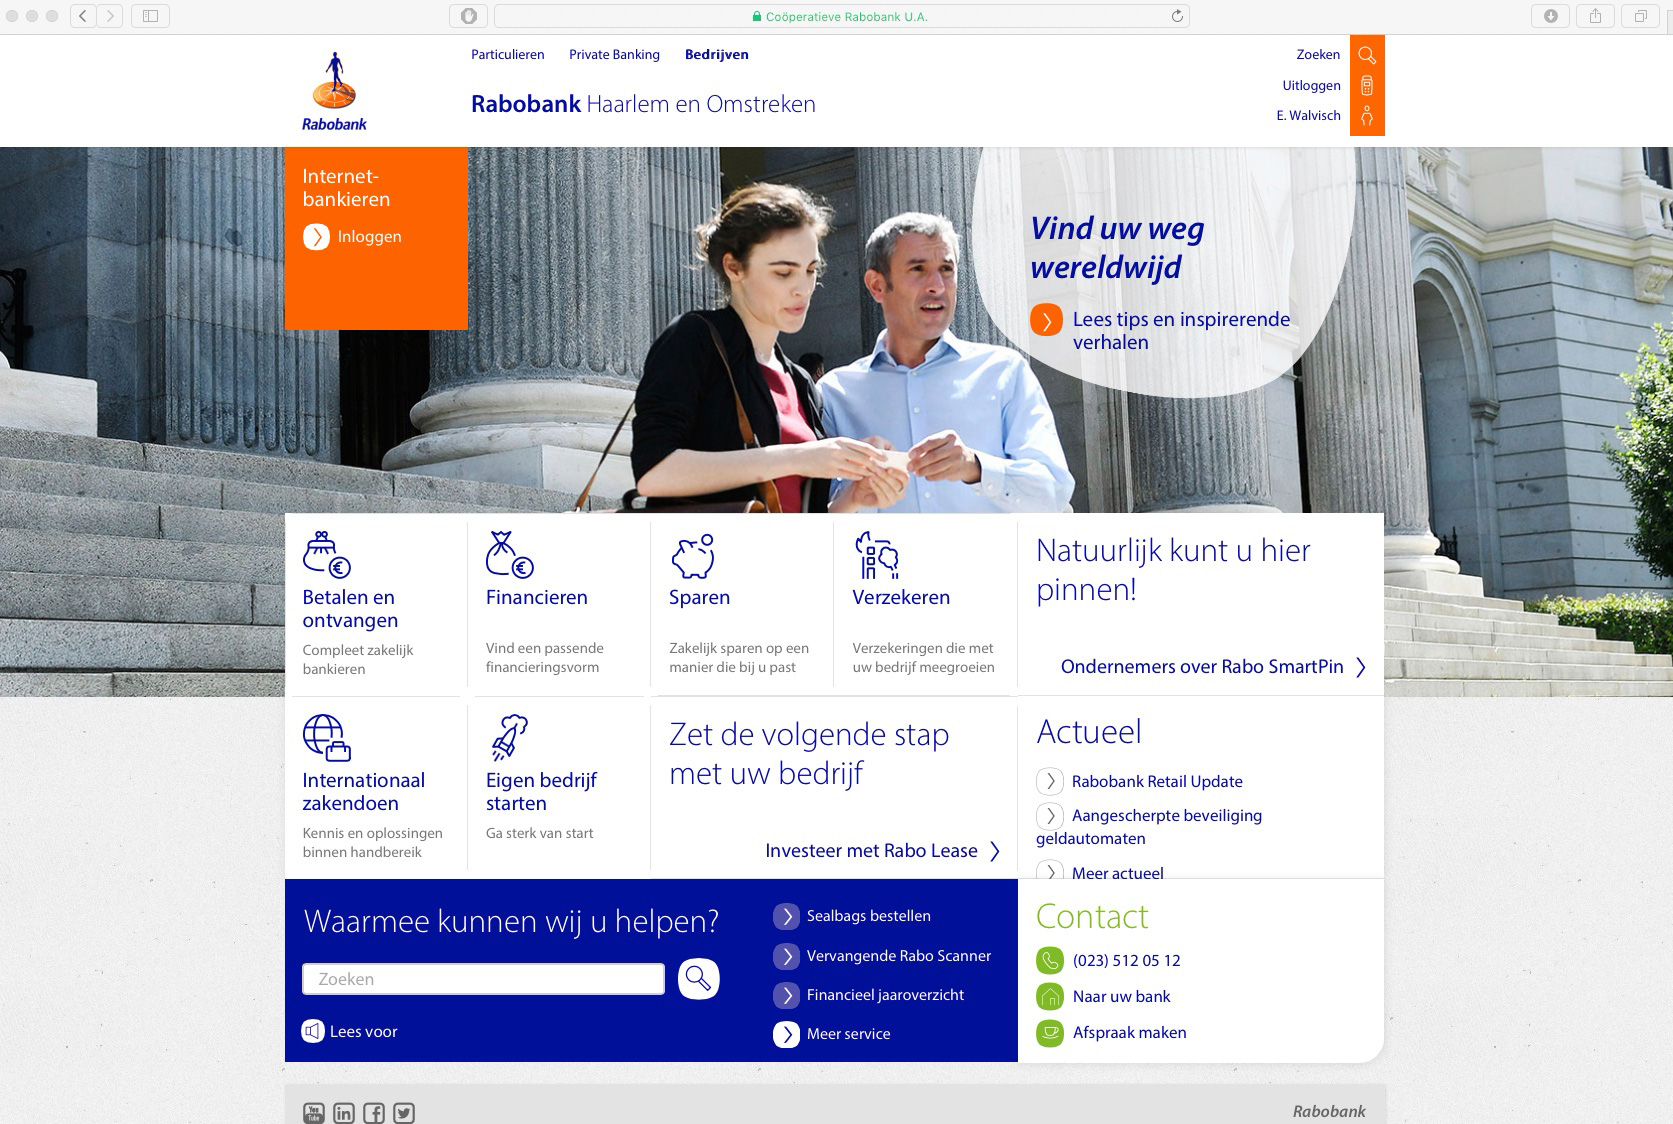 Rabobank International, online campaign, Madrid 2017